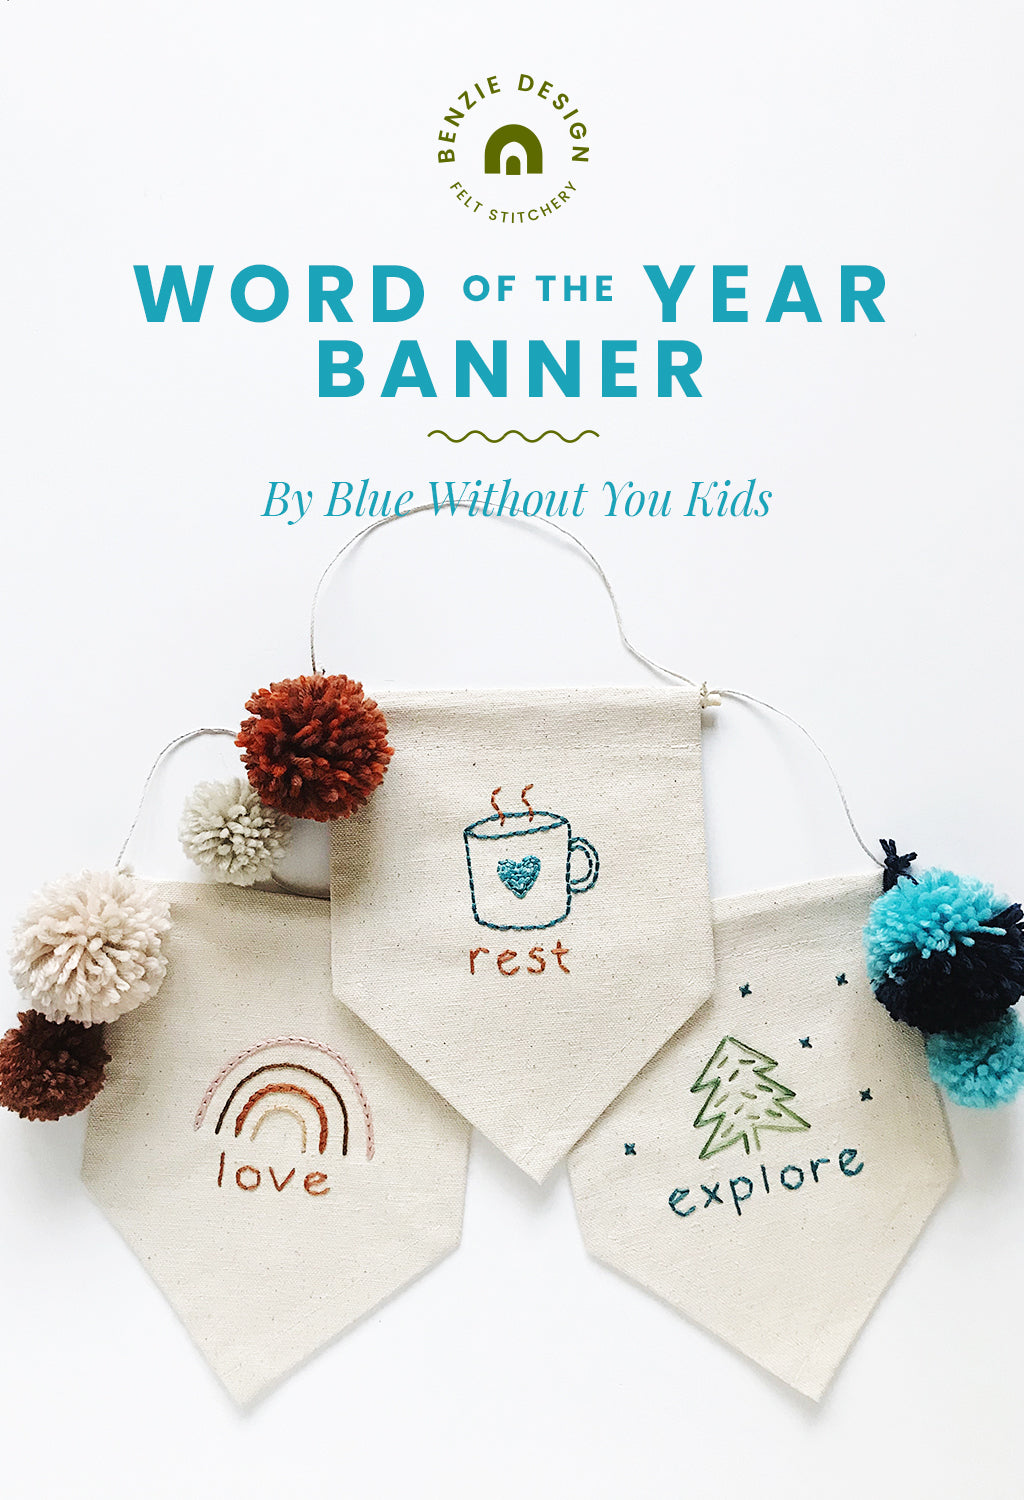 Word of the Year Banner